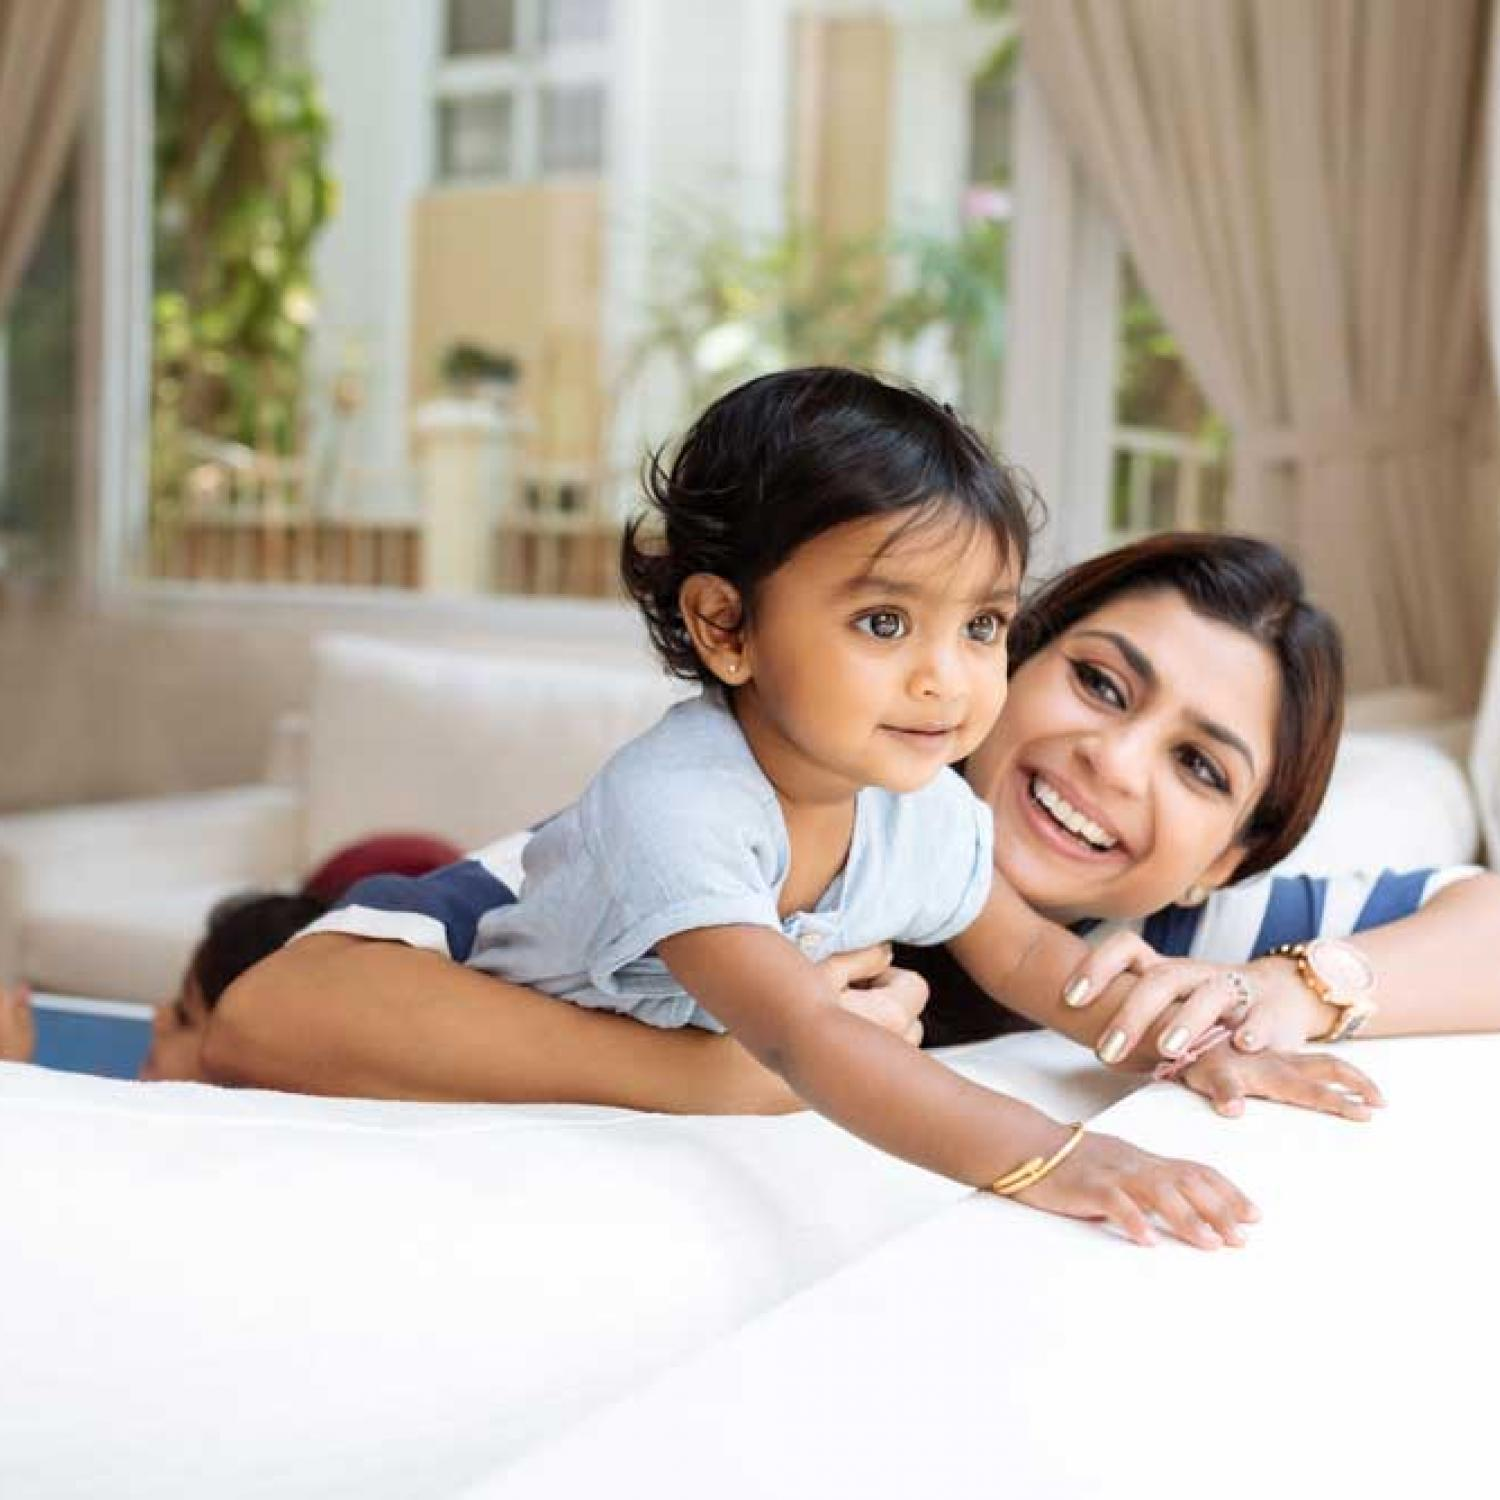 24 hours of modern mother: how to allocate 3 hours exclusively for yourself